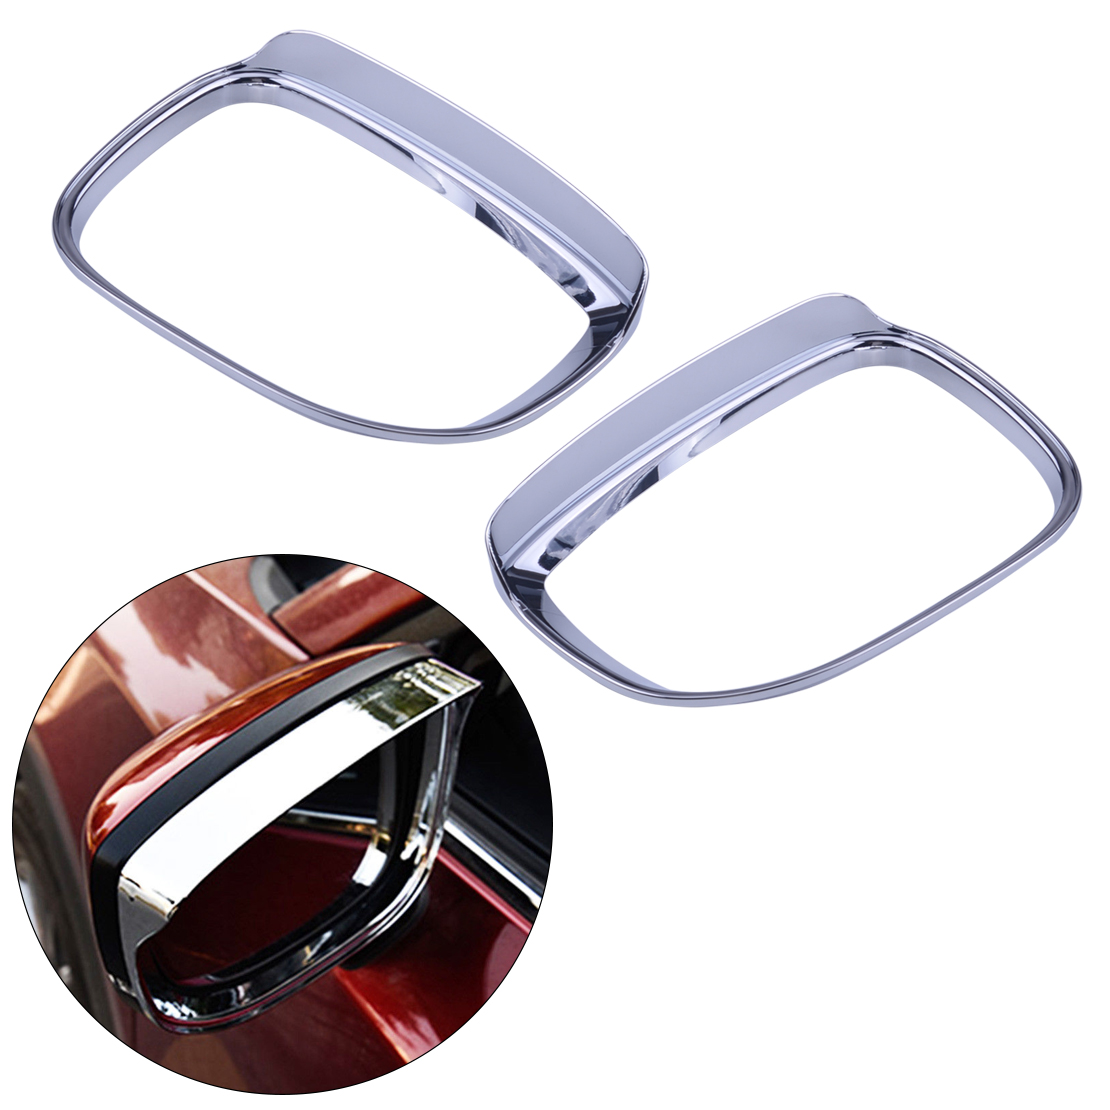 Mirror & Covers Automobiles & Motorcycles Helpful Citall 2pcs Silver Car Side Door Rearview Mirror Rain Guard Cover Trim Abs Chrome Fit For Mazda Cx-5 2017 2018 Pleasant In After-Taste